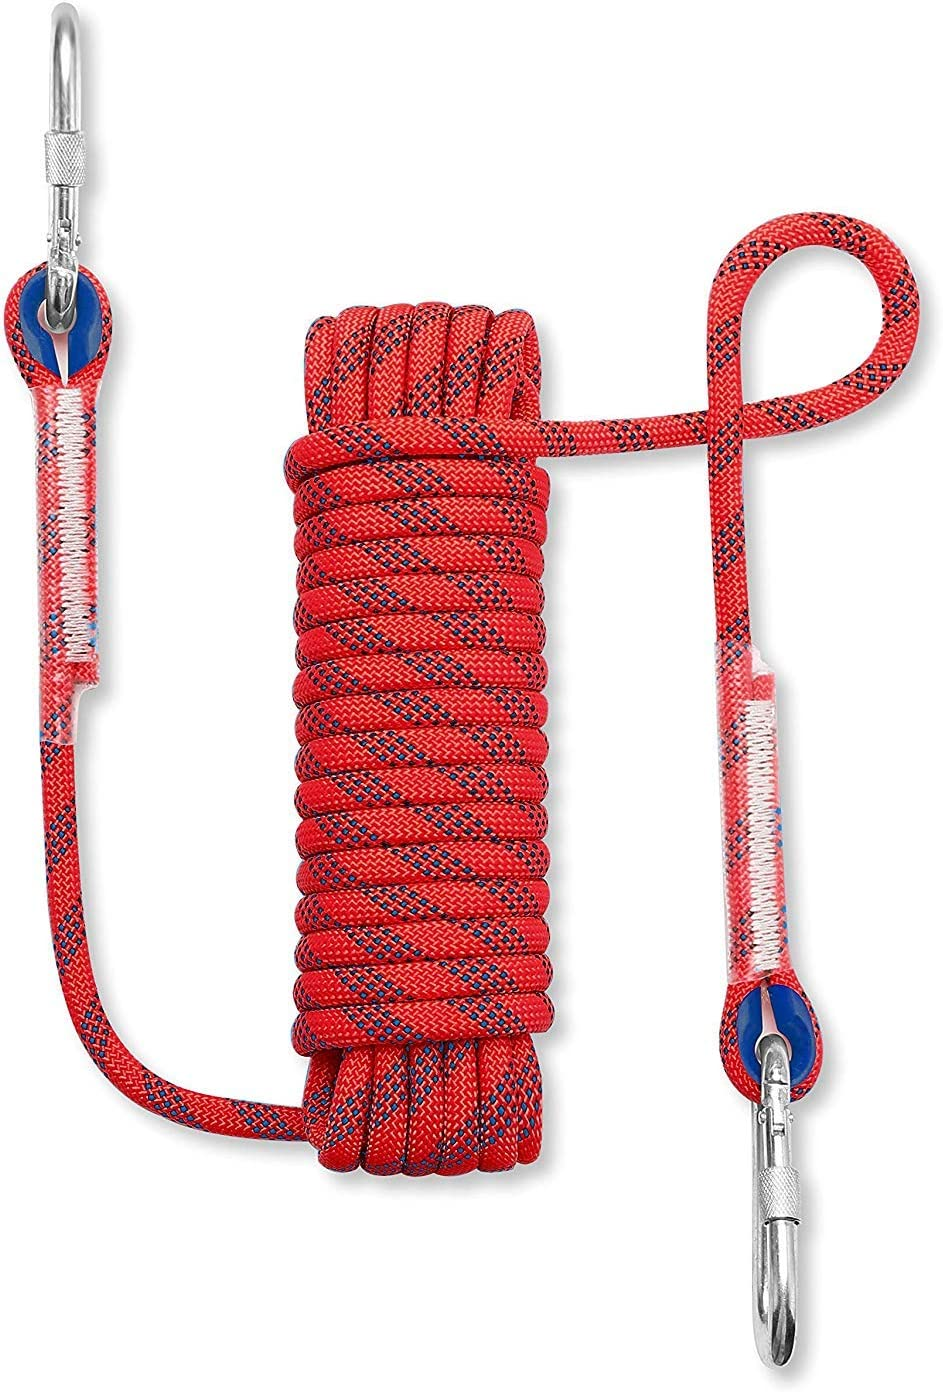 Sunshine smile Outdoor Climbing Rope Rock Rope Safety Rope Climbing Rope with Buckle Climbing Rope with Carabiner